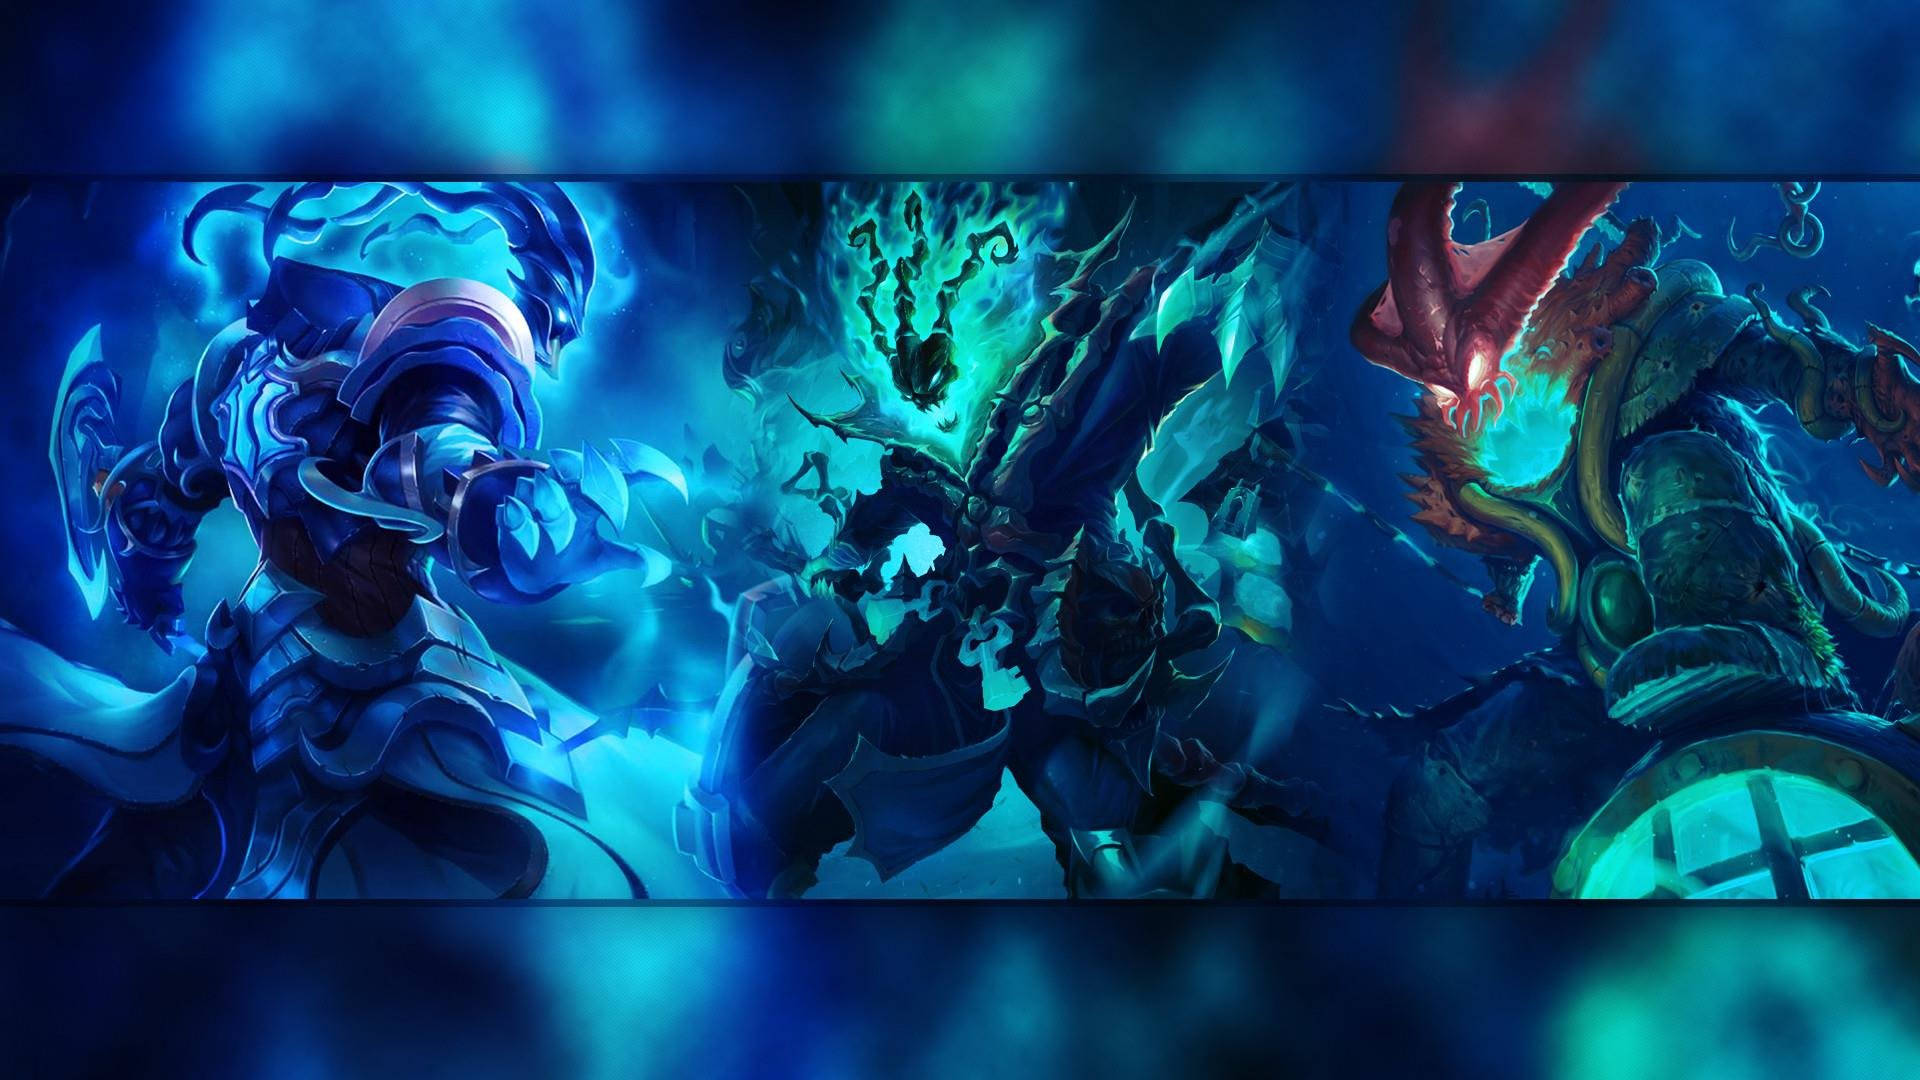 Download Full Hd Thresh League Of Legends Computer Background Id